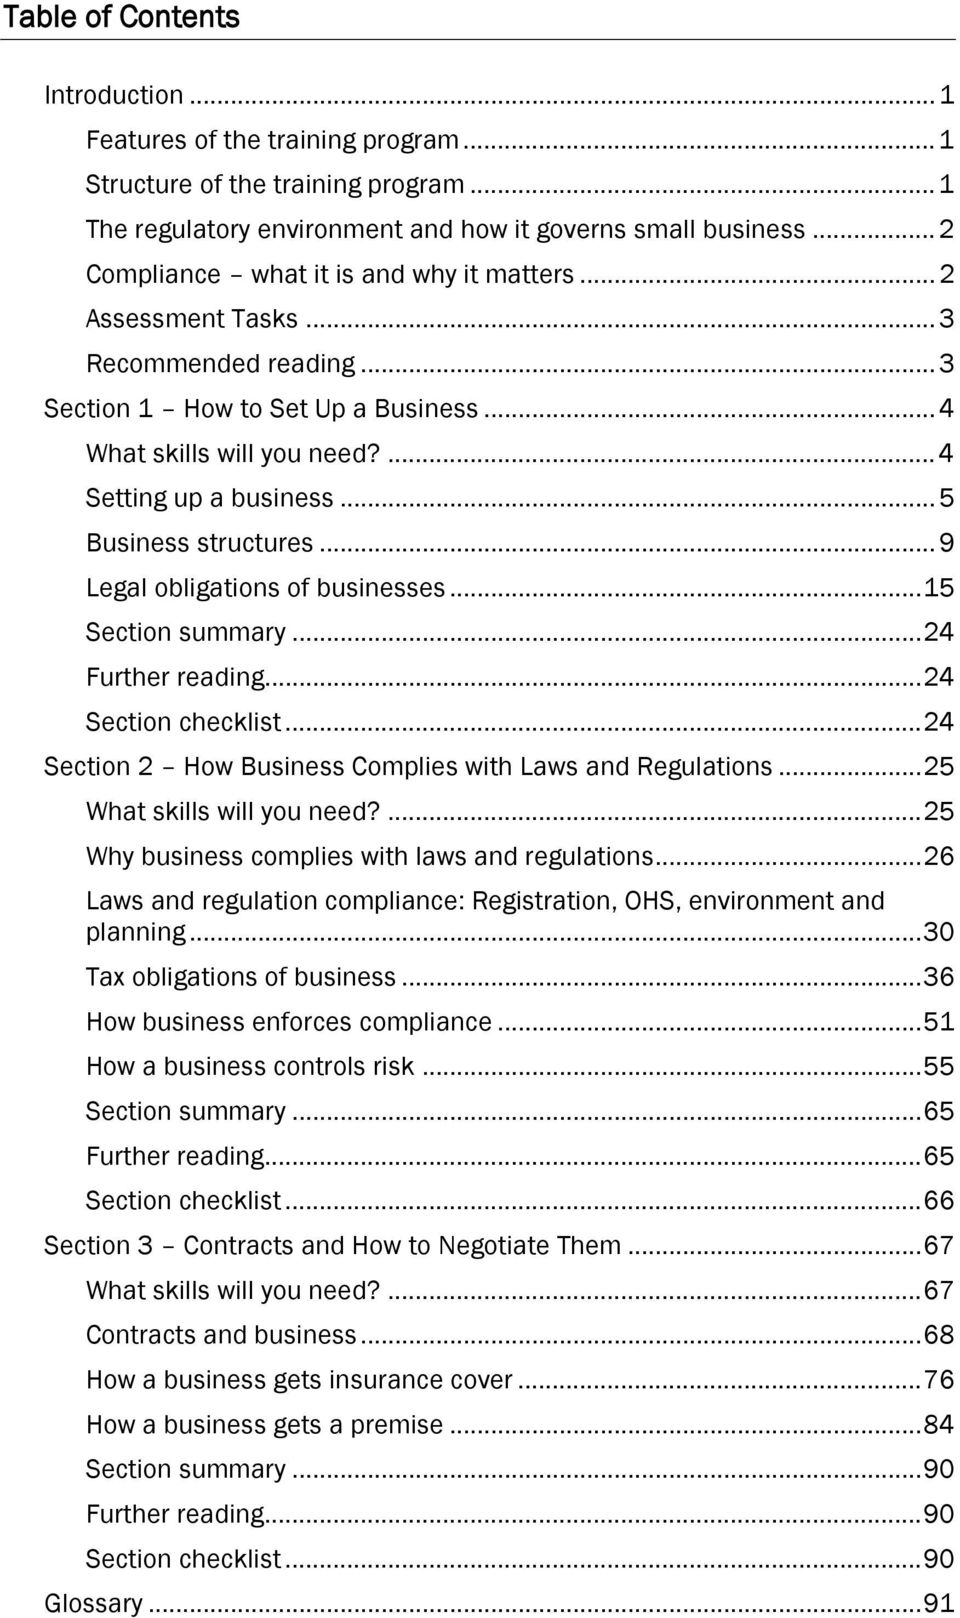 .. 5 Business structures... 9 Legal obligations of businesses... 15 Section summary... 24 Further reading... 24 Section checklist... 24 Section 2 How Business Complies with Laws and Regulations.